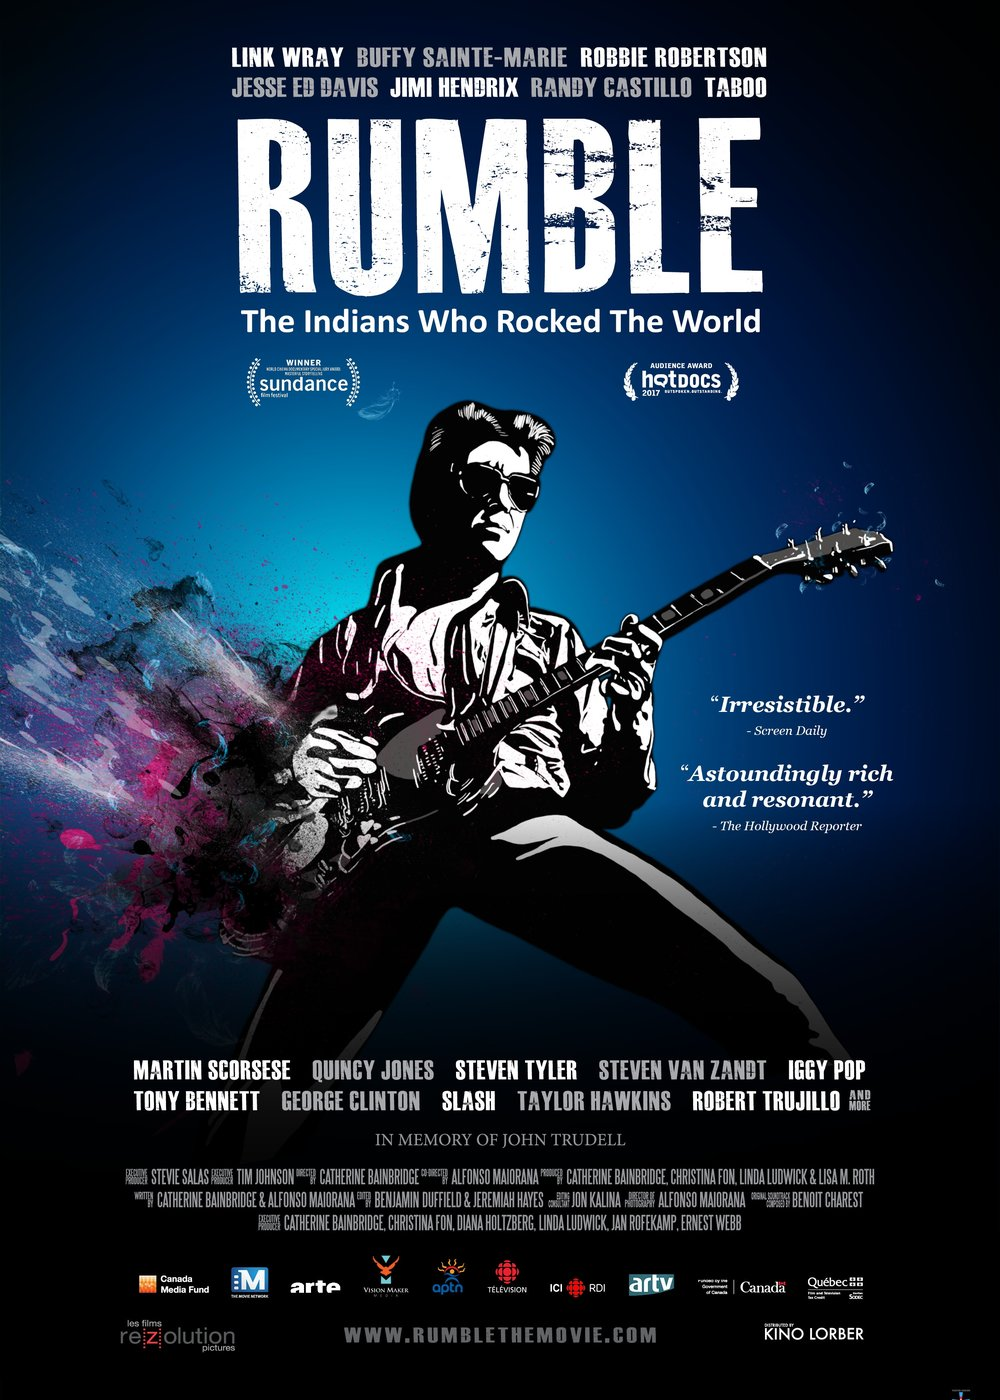 RUMBLE: The Indians Who Rocked the World - 2017, Canada, 97 min/104 min incl., in EnglishThis powerful documentary about the role of Native Americans in contemporary music history—featuring some of the greatest music stars of our time—exposes a critical missing chapter, revealing how indigenous musicians helped shape the soundtracks of our lives and, through their contributions, influenced popular culture.